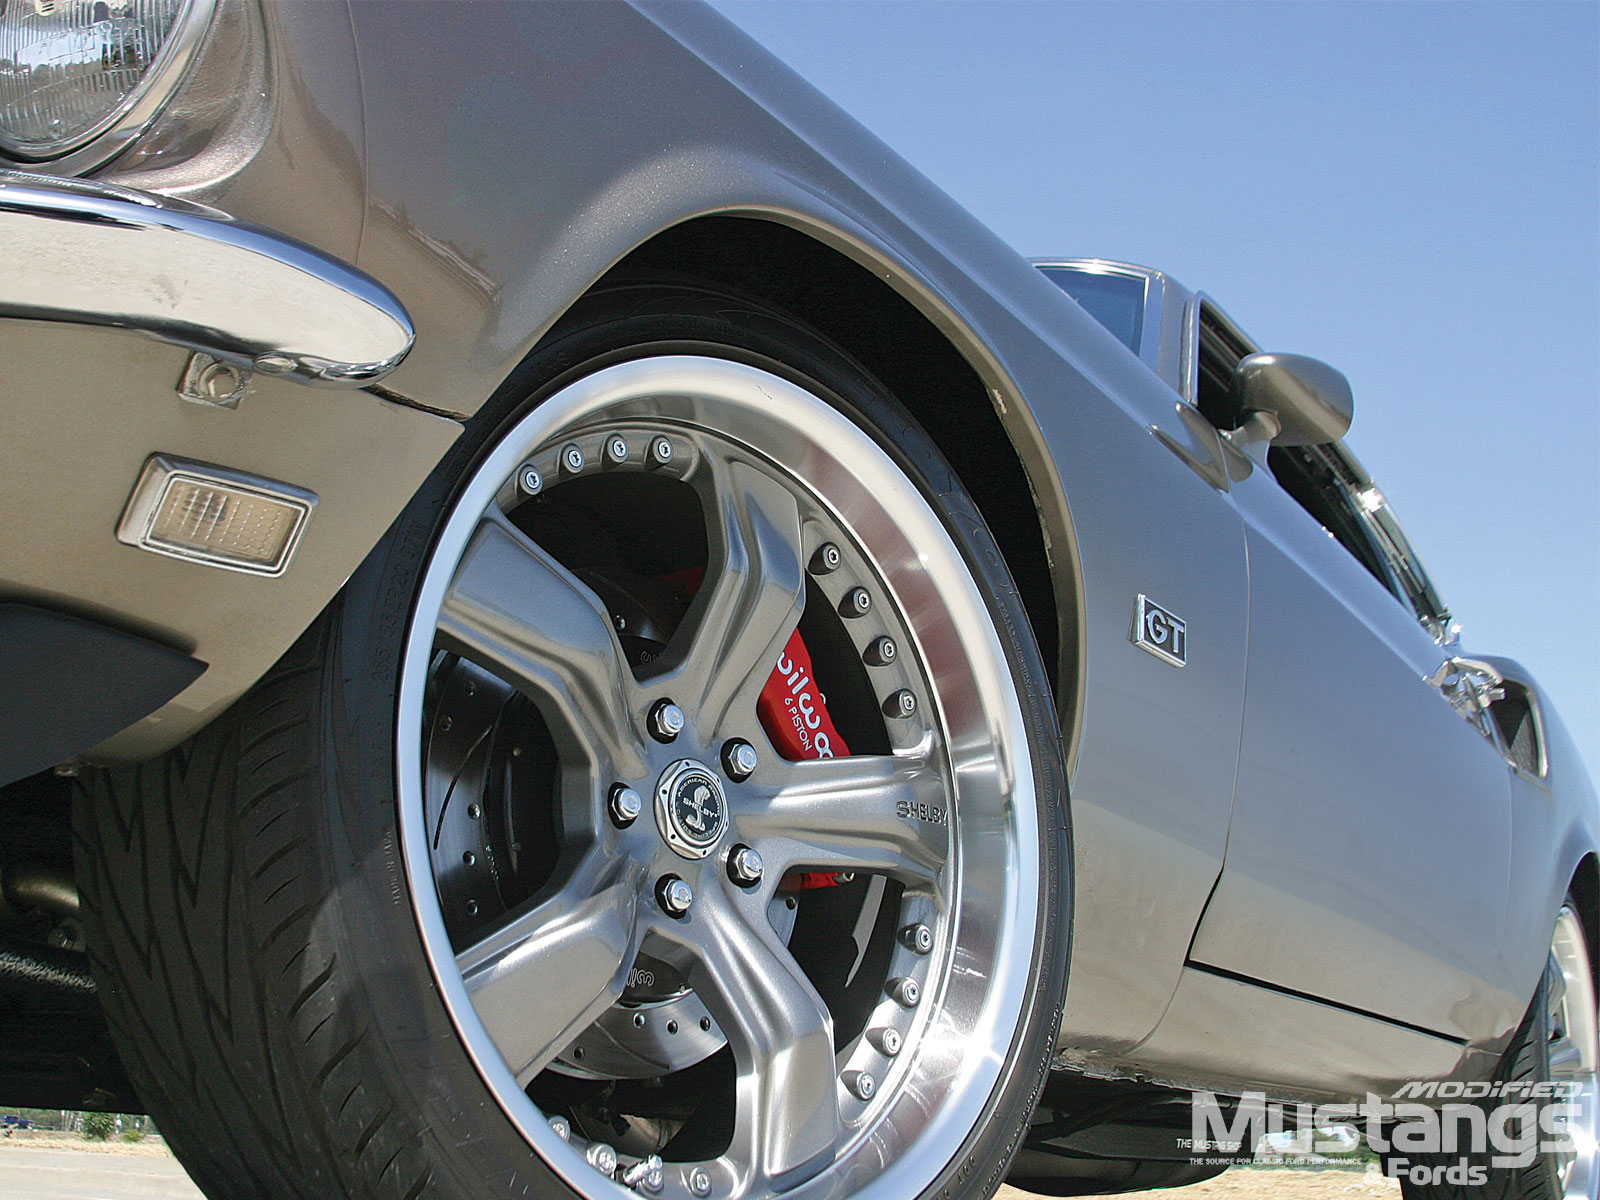 1969 Ford Mustang Gt Sportsroof Wheels And Tires